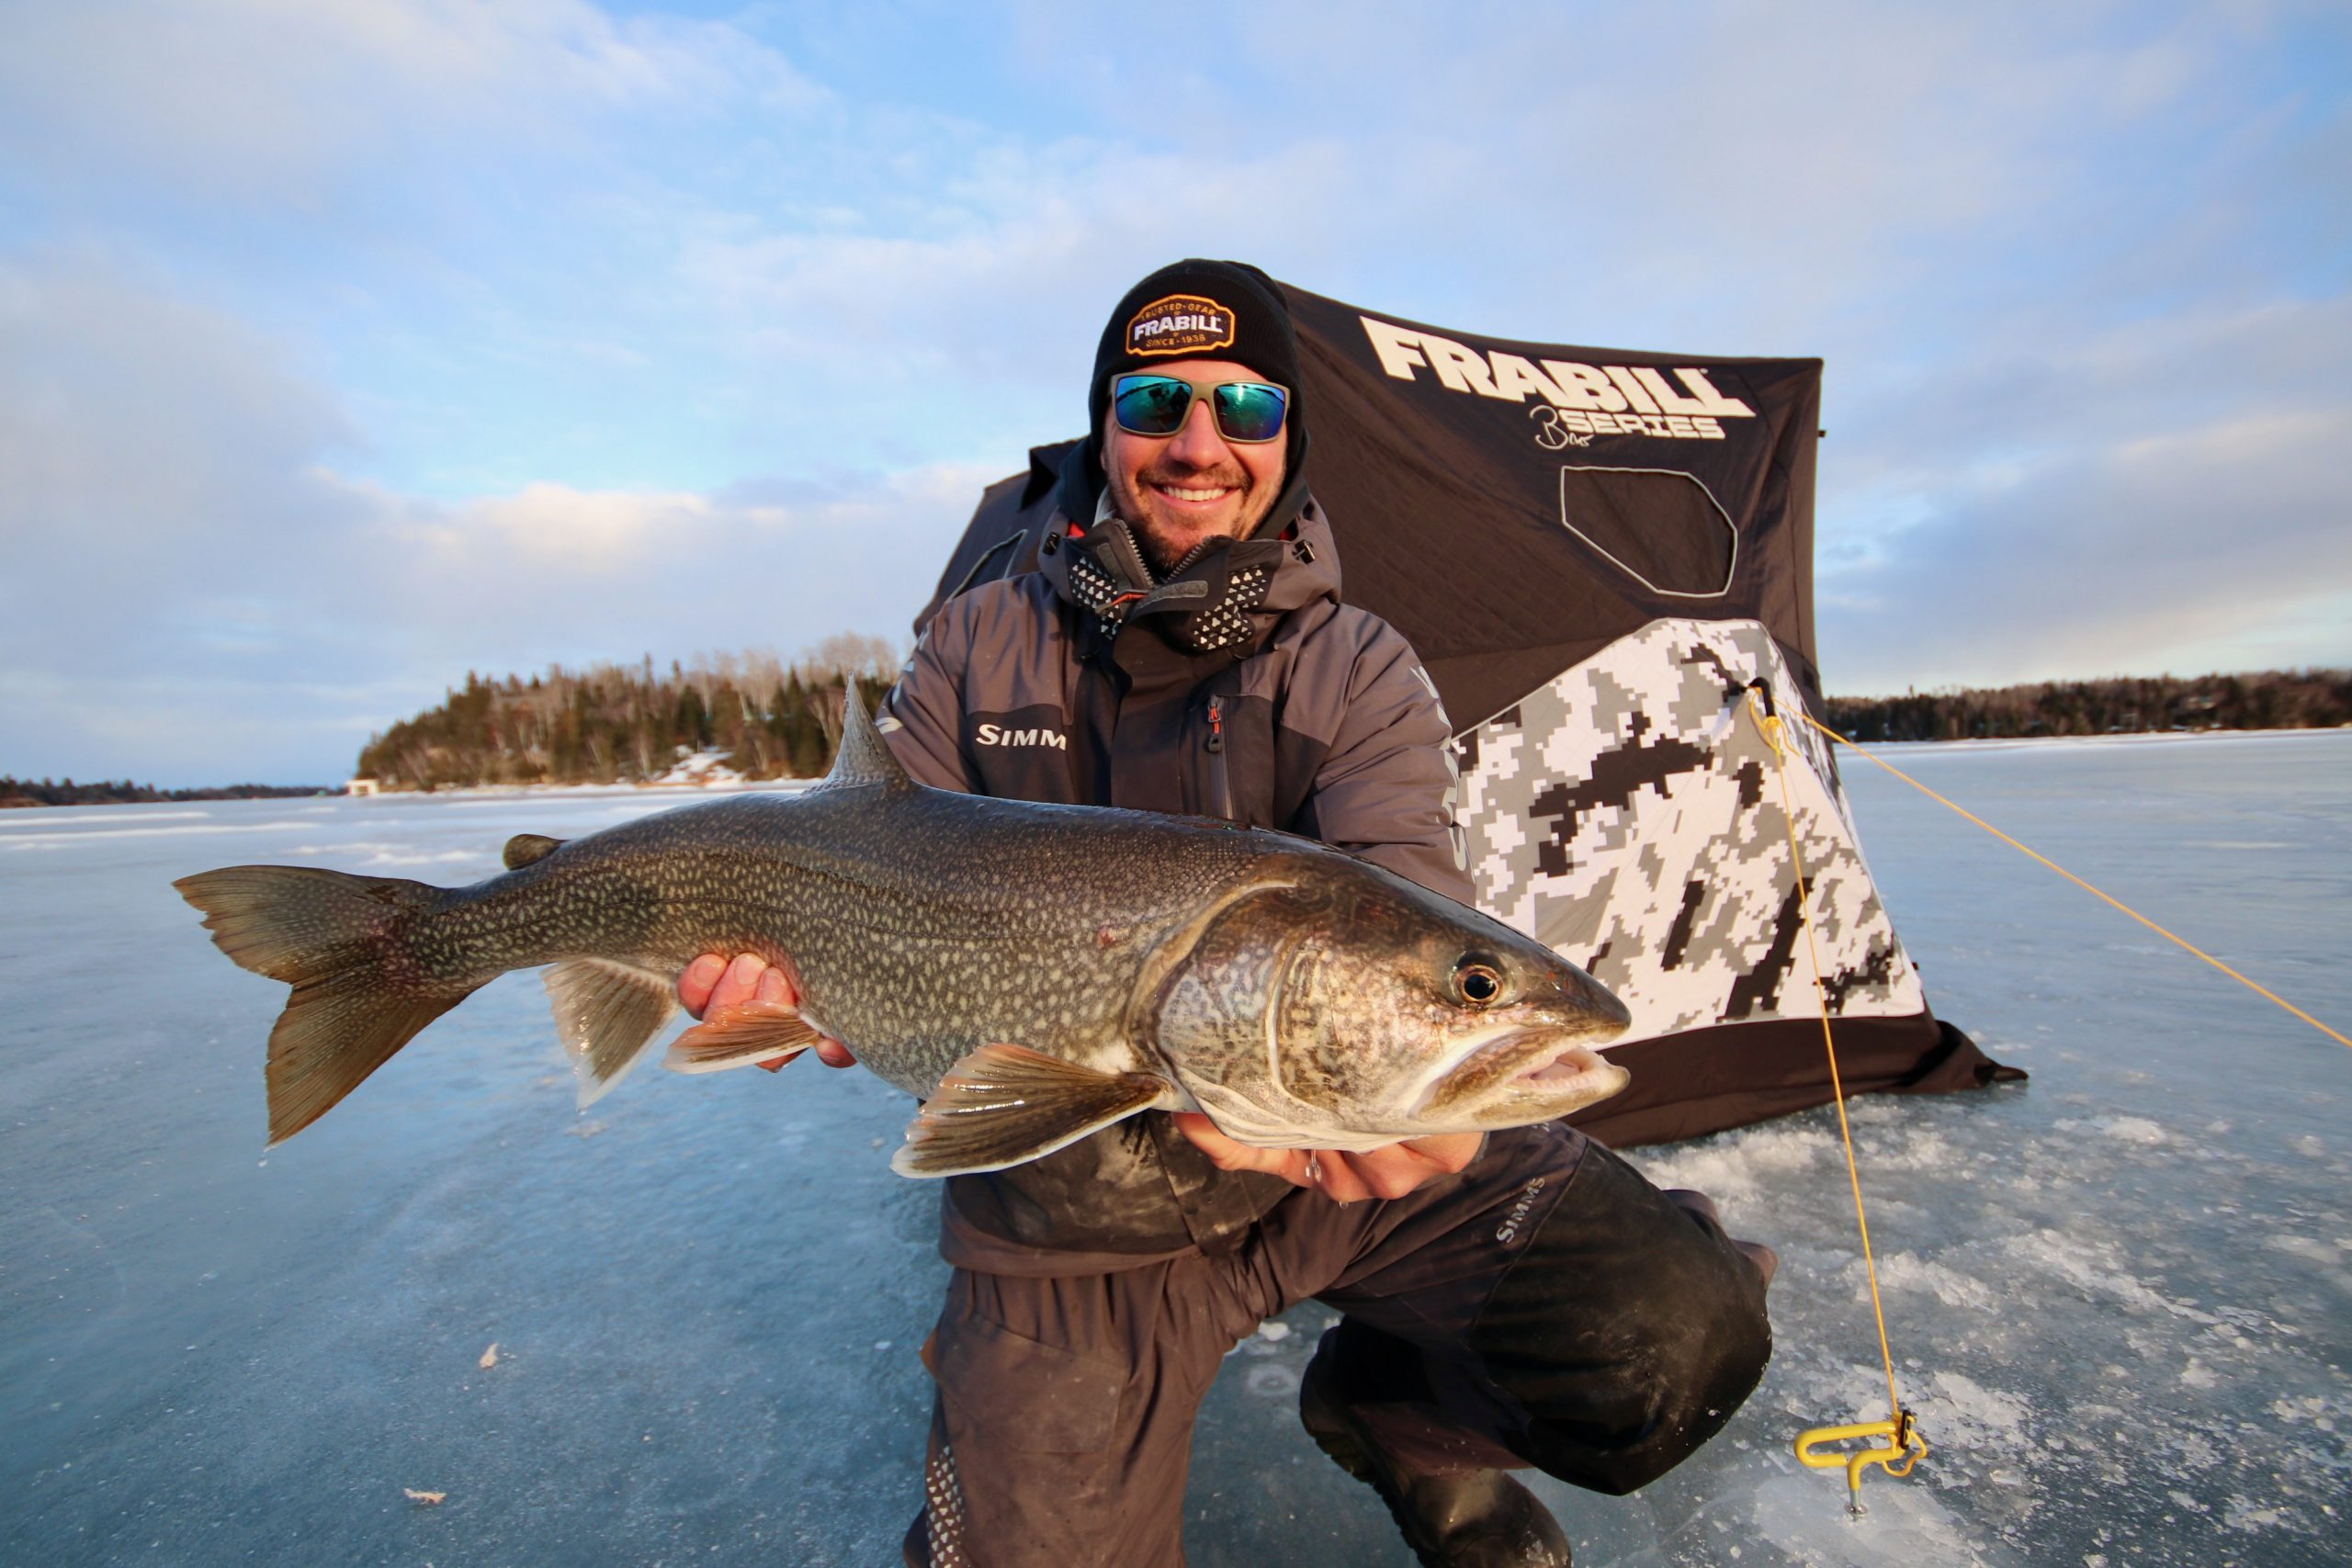 Last chance for ice fishing